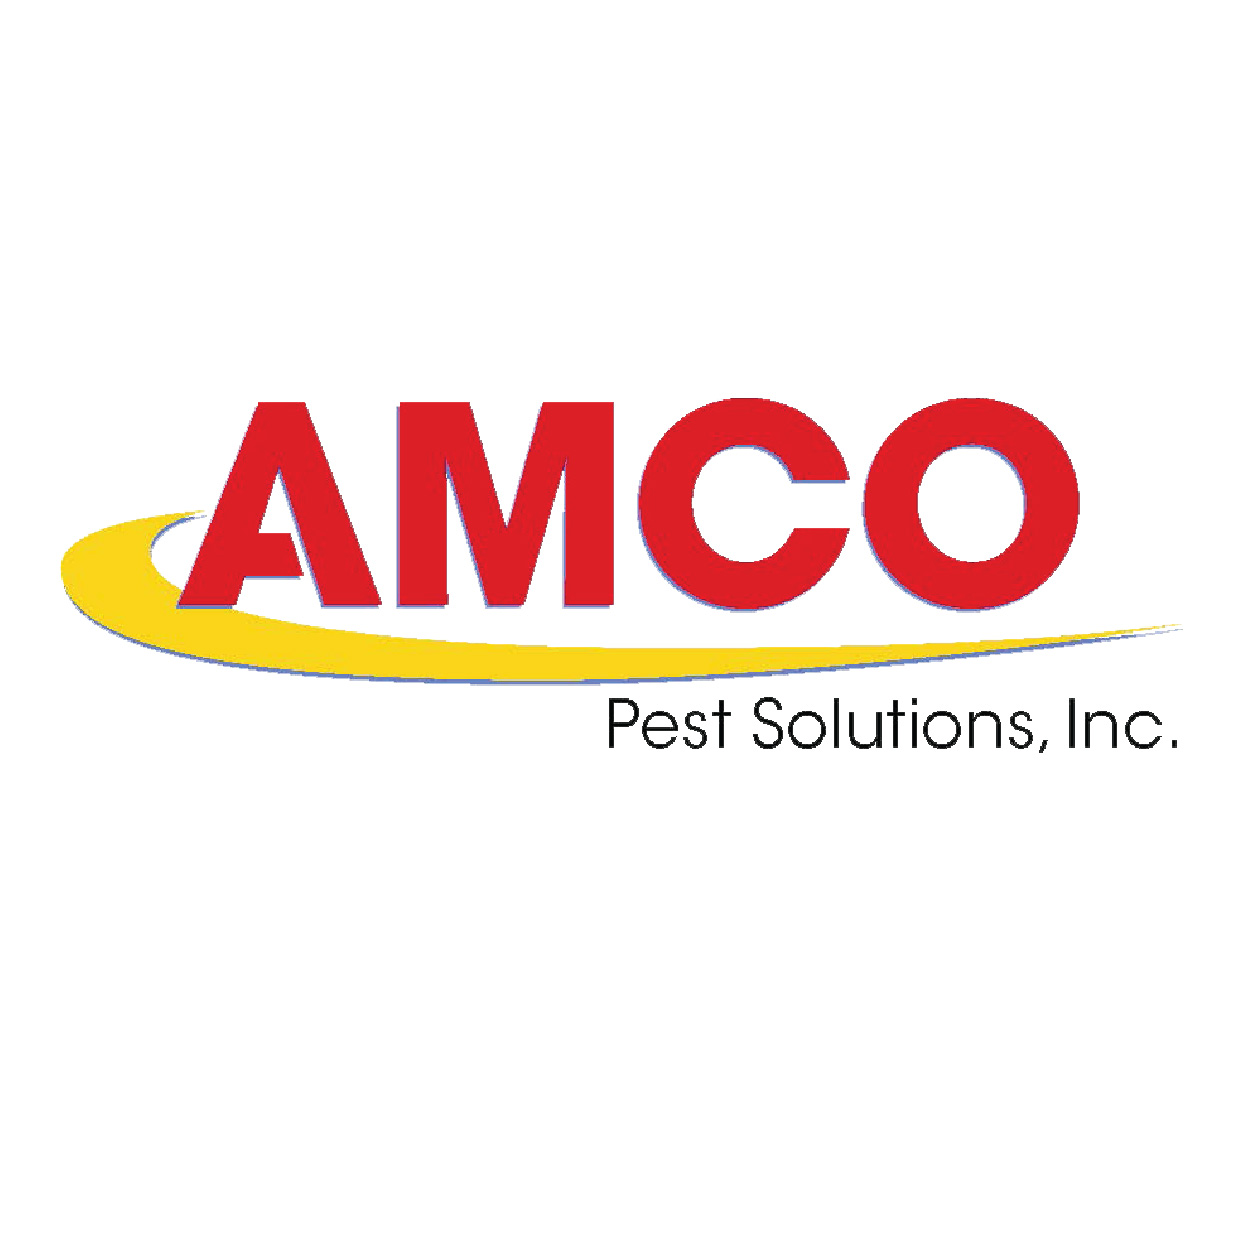 Amco Pest Solutions, Inc.